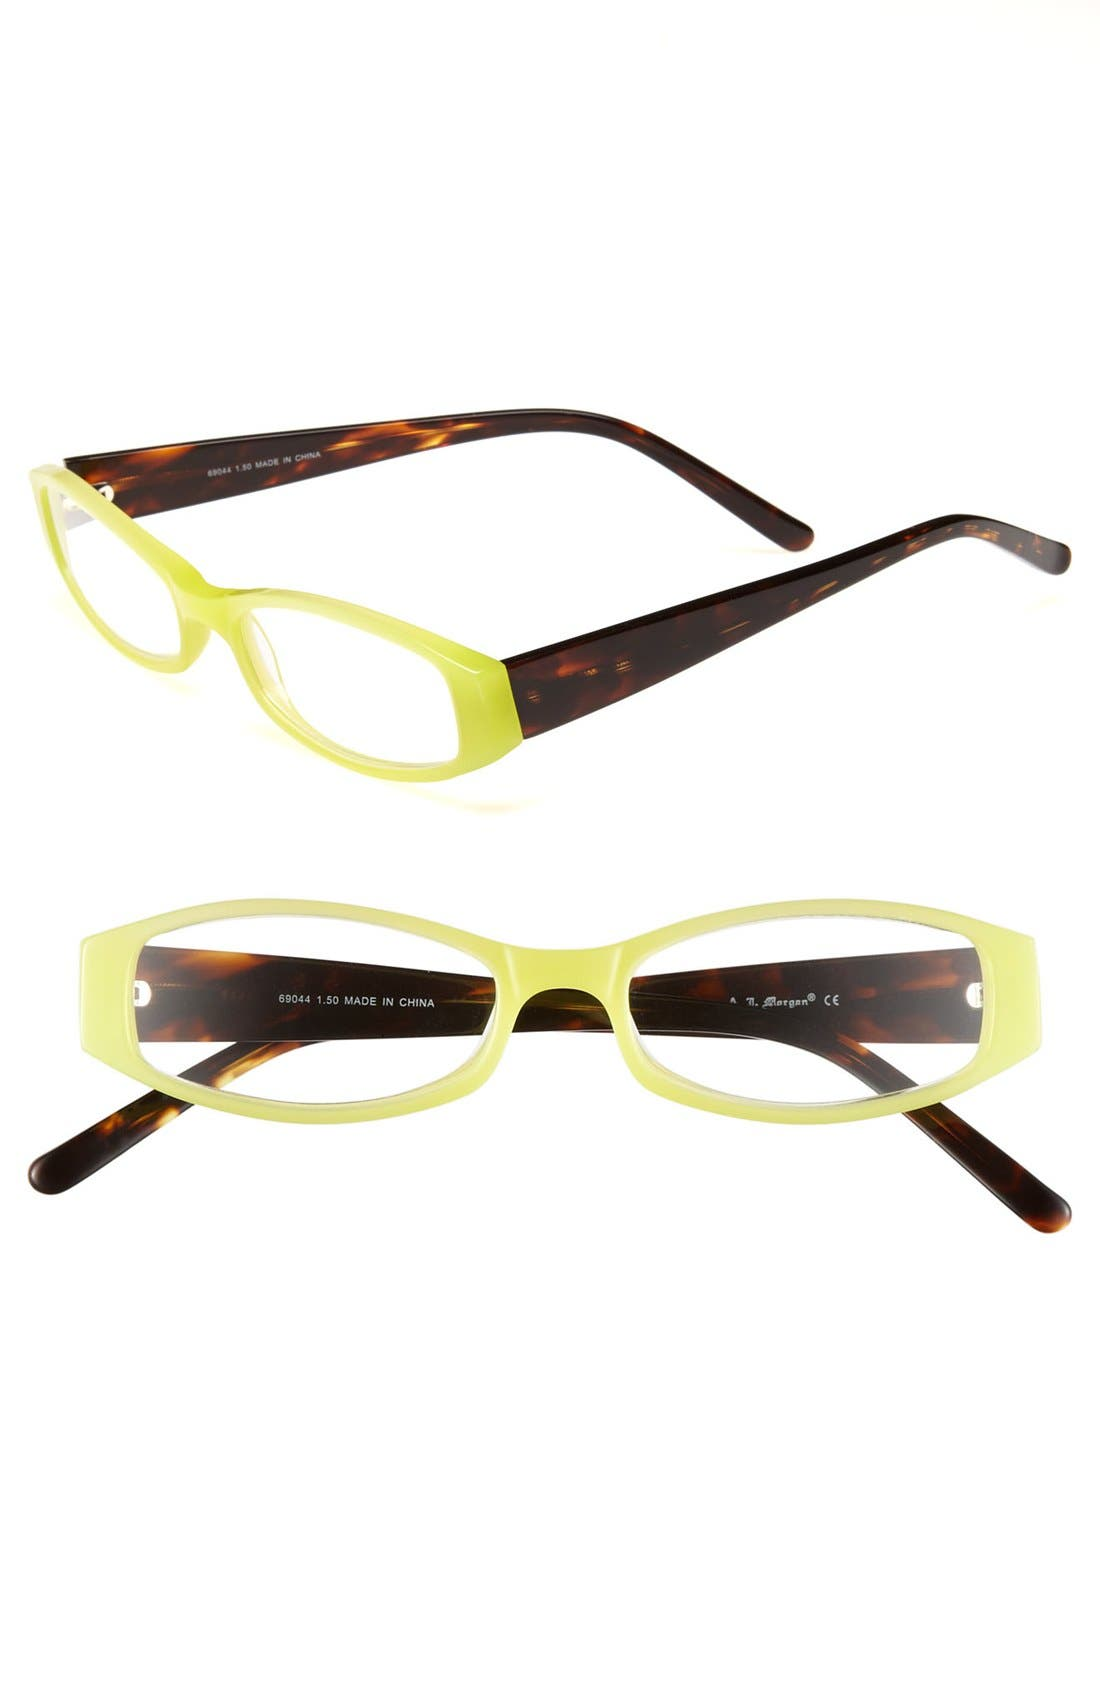 Alternate Image 1 Selected - A.J. Morgan 'Promoted' Reading Glasses (Online Only)